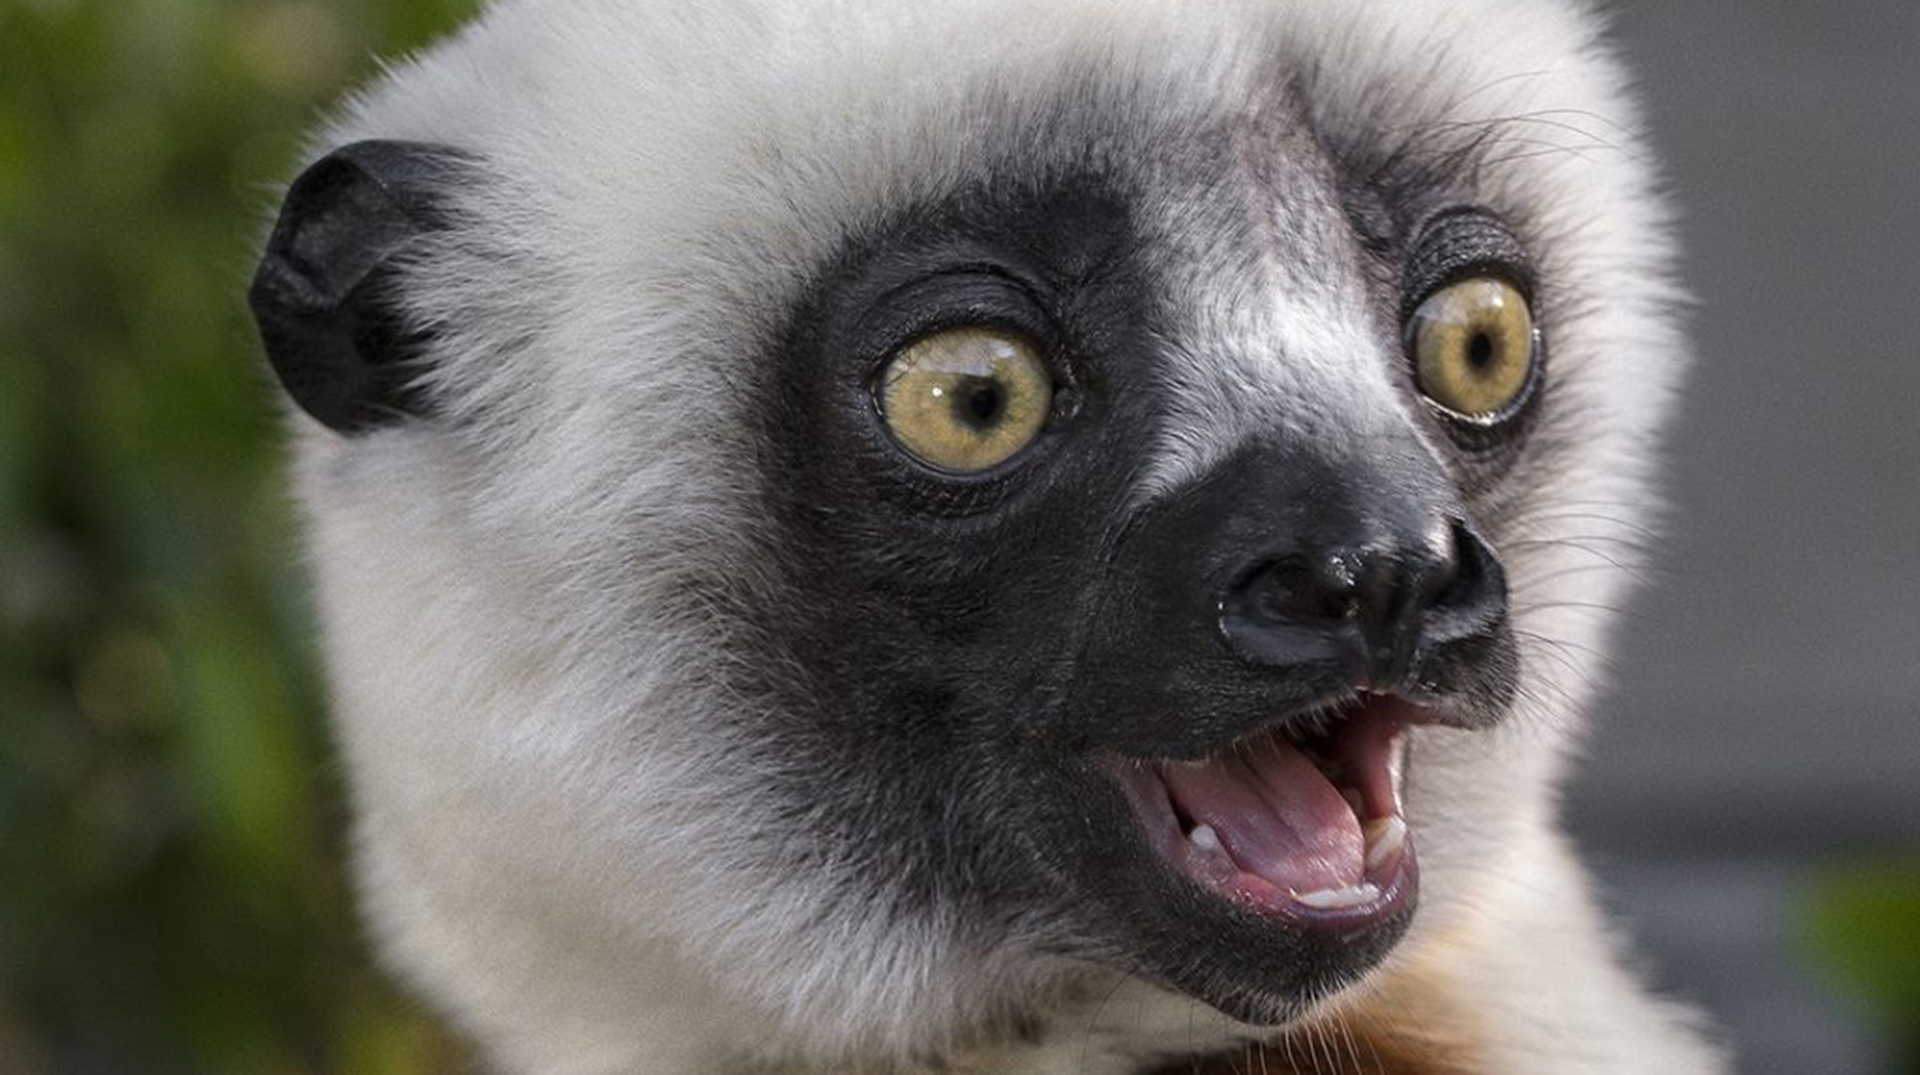 The black and white face of a close up lemur